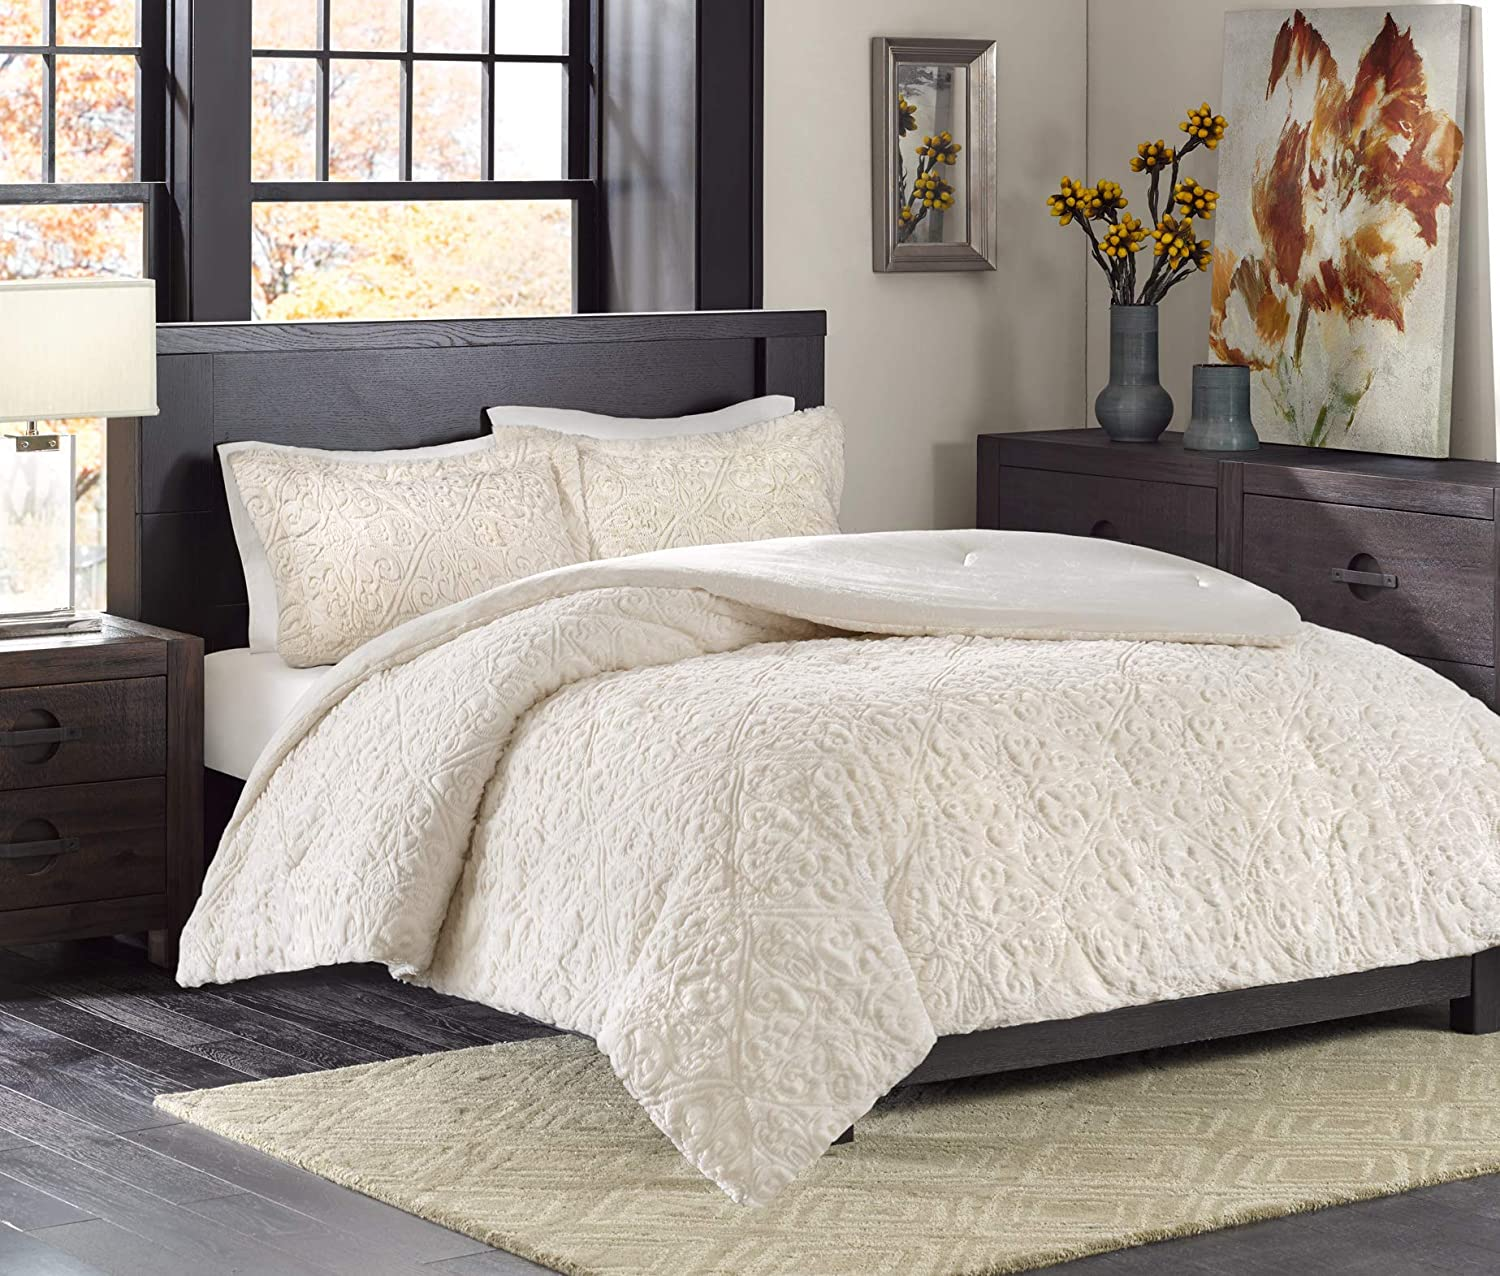 Madison Park Bismarck King Size Bed Comforter Set - Ivory, Embroidered Medallion – 3 Pieces Bedding Sets – Faux Fur Plush Bedroom Comforters